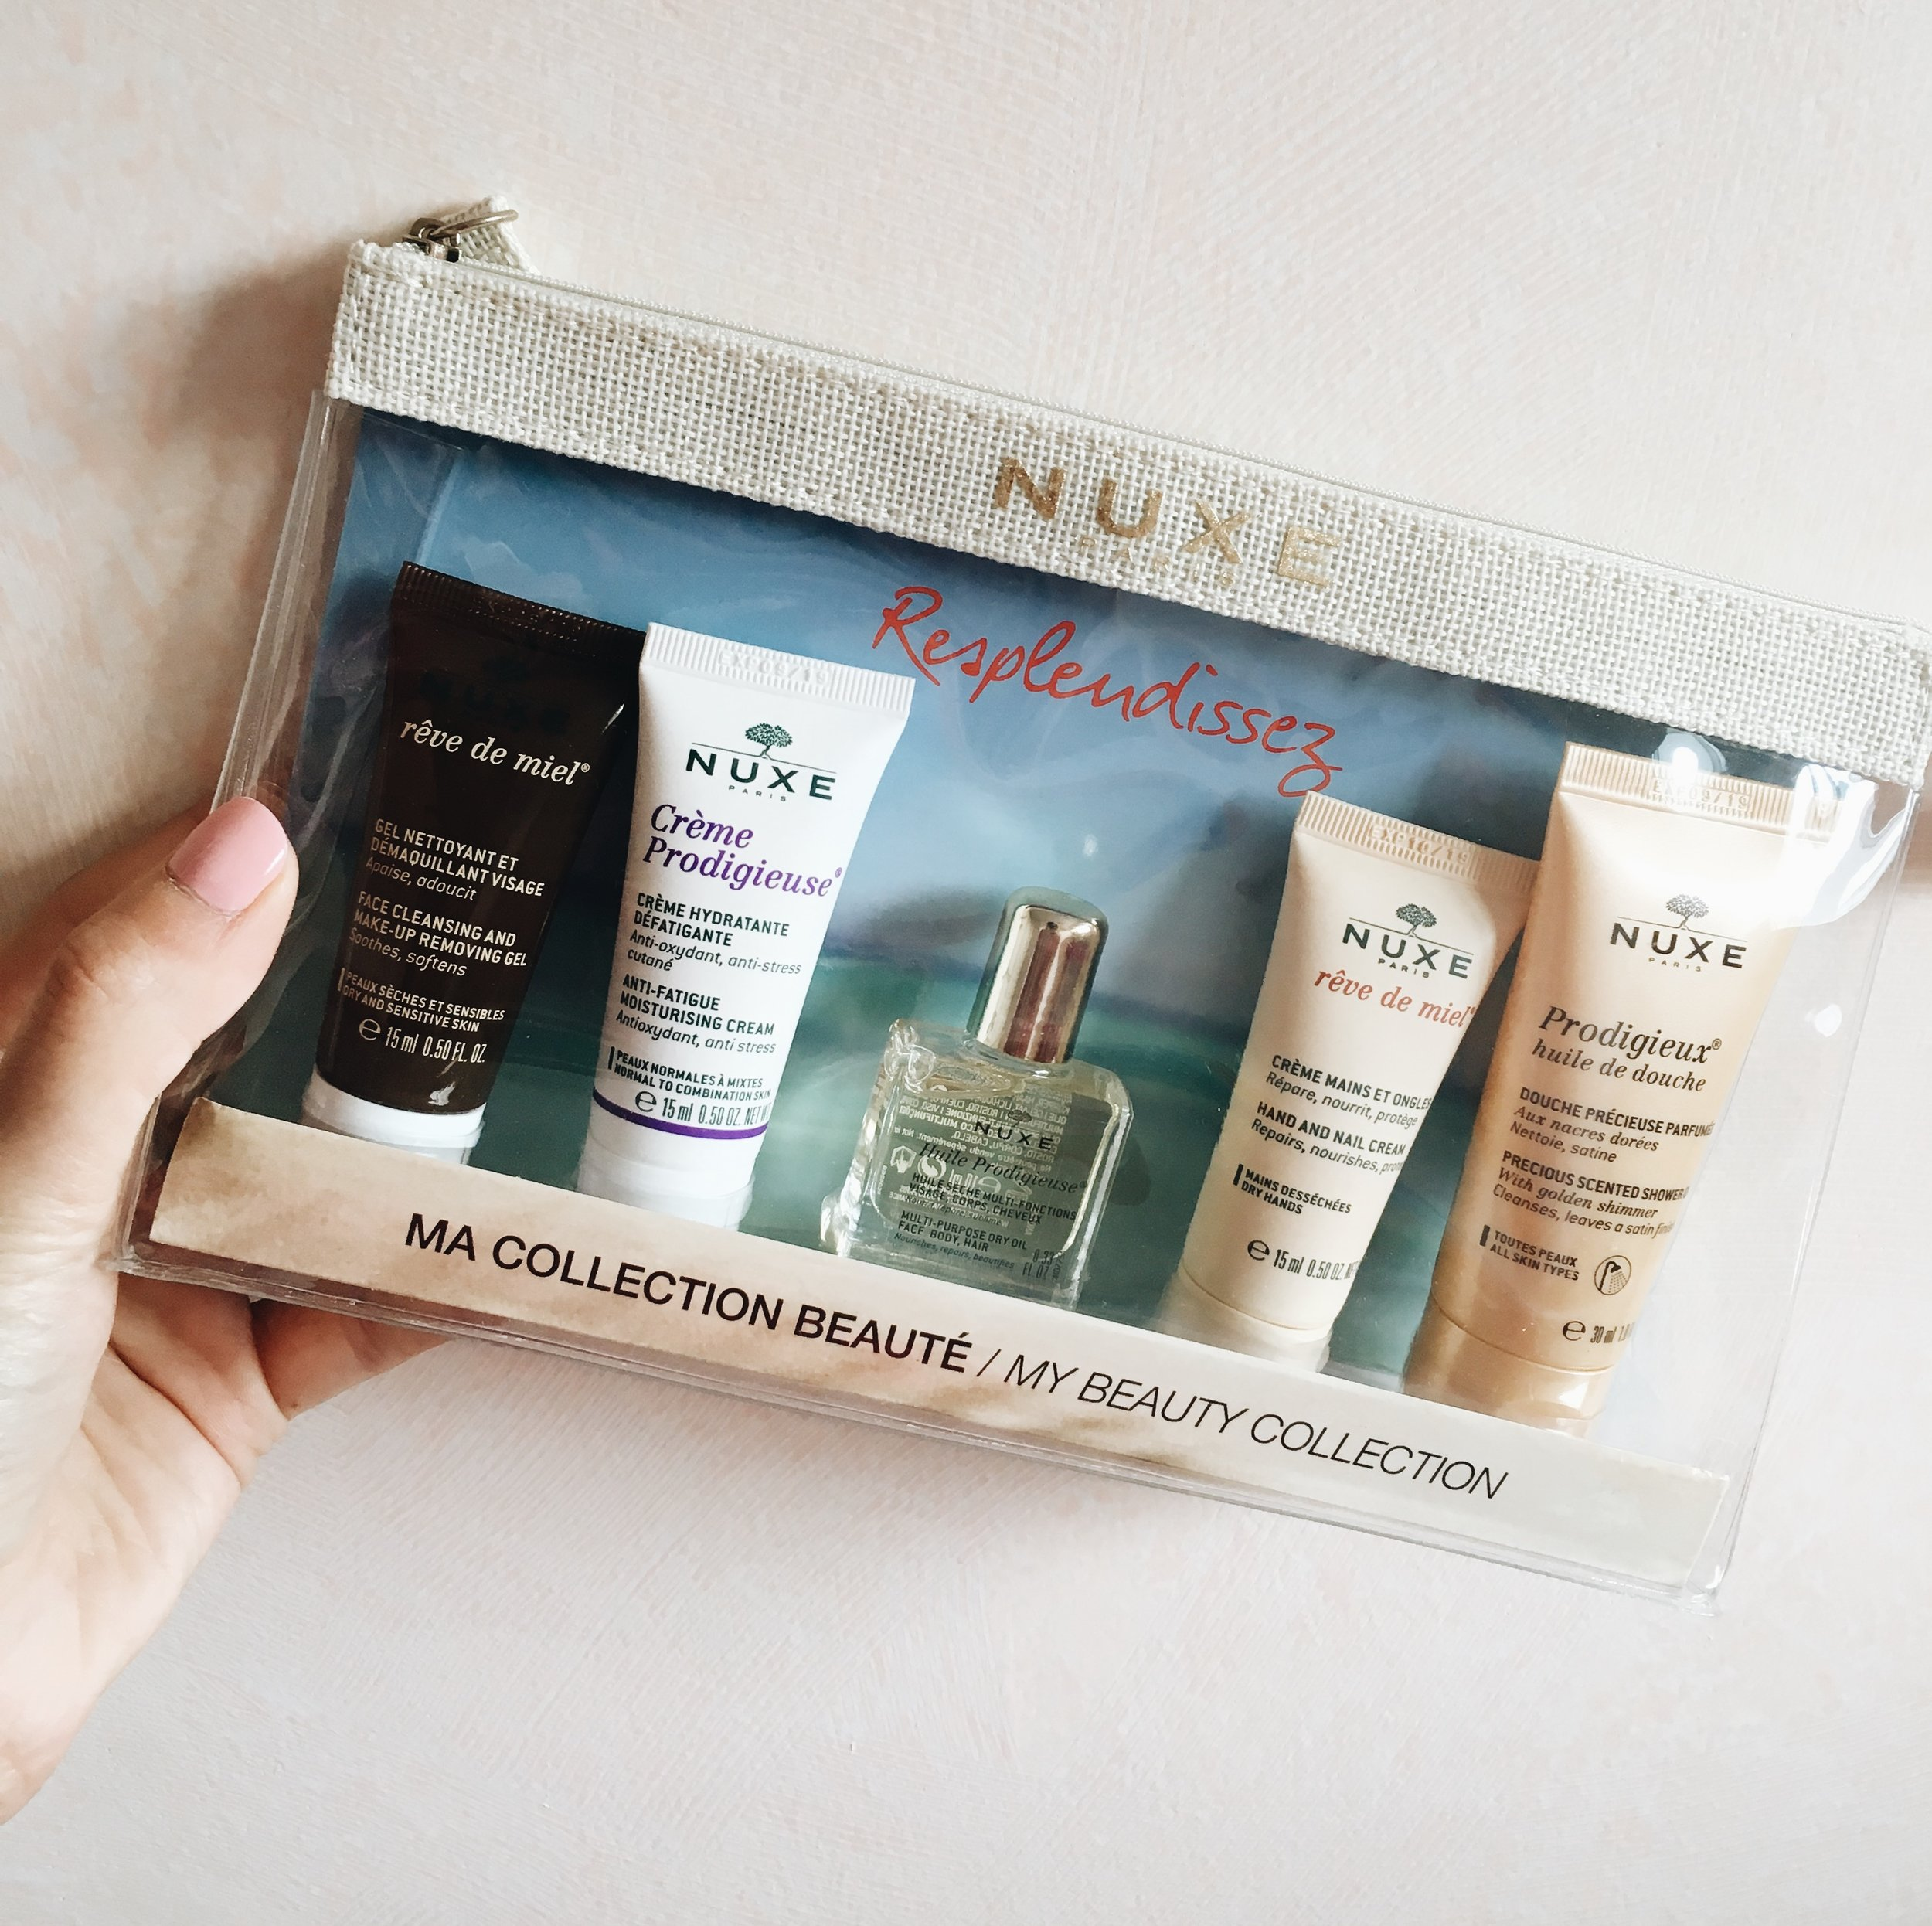 I'm a big fan of French beauty products Nuxe and this mini versions were perfect for my plane ride!